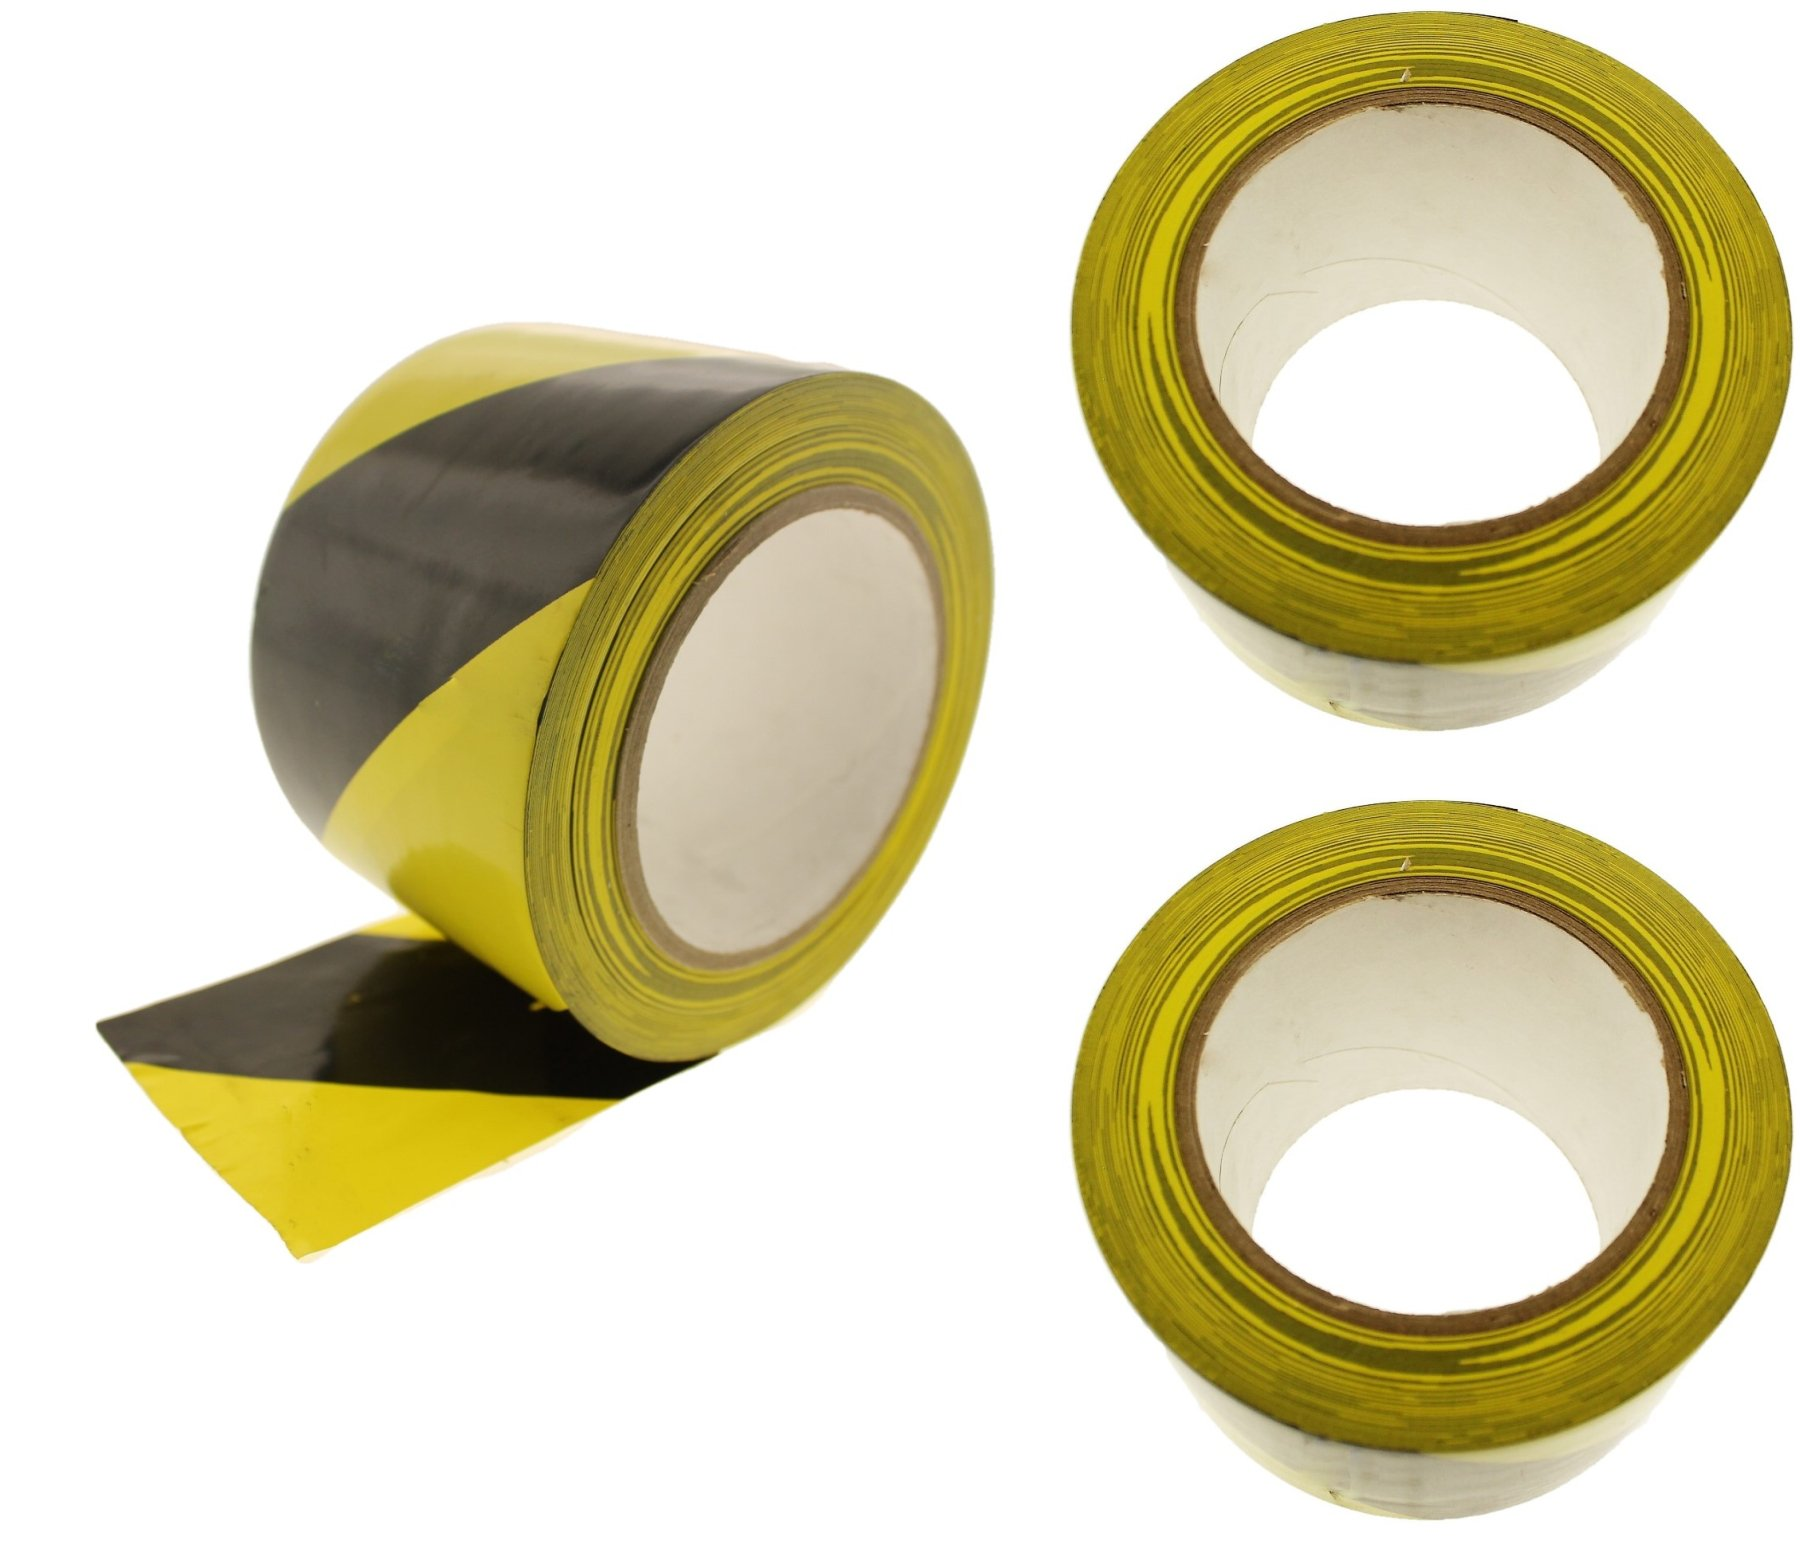 3pk of 3'' Black Yellow Striped Vinyl Tape PVC Electrical Sealing Floor OSHA Safety Marking Natural Rubber Adhesive (2.83 in 72MM) 36 Yard 7 mil